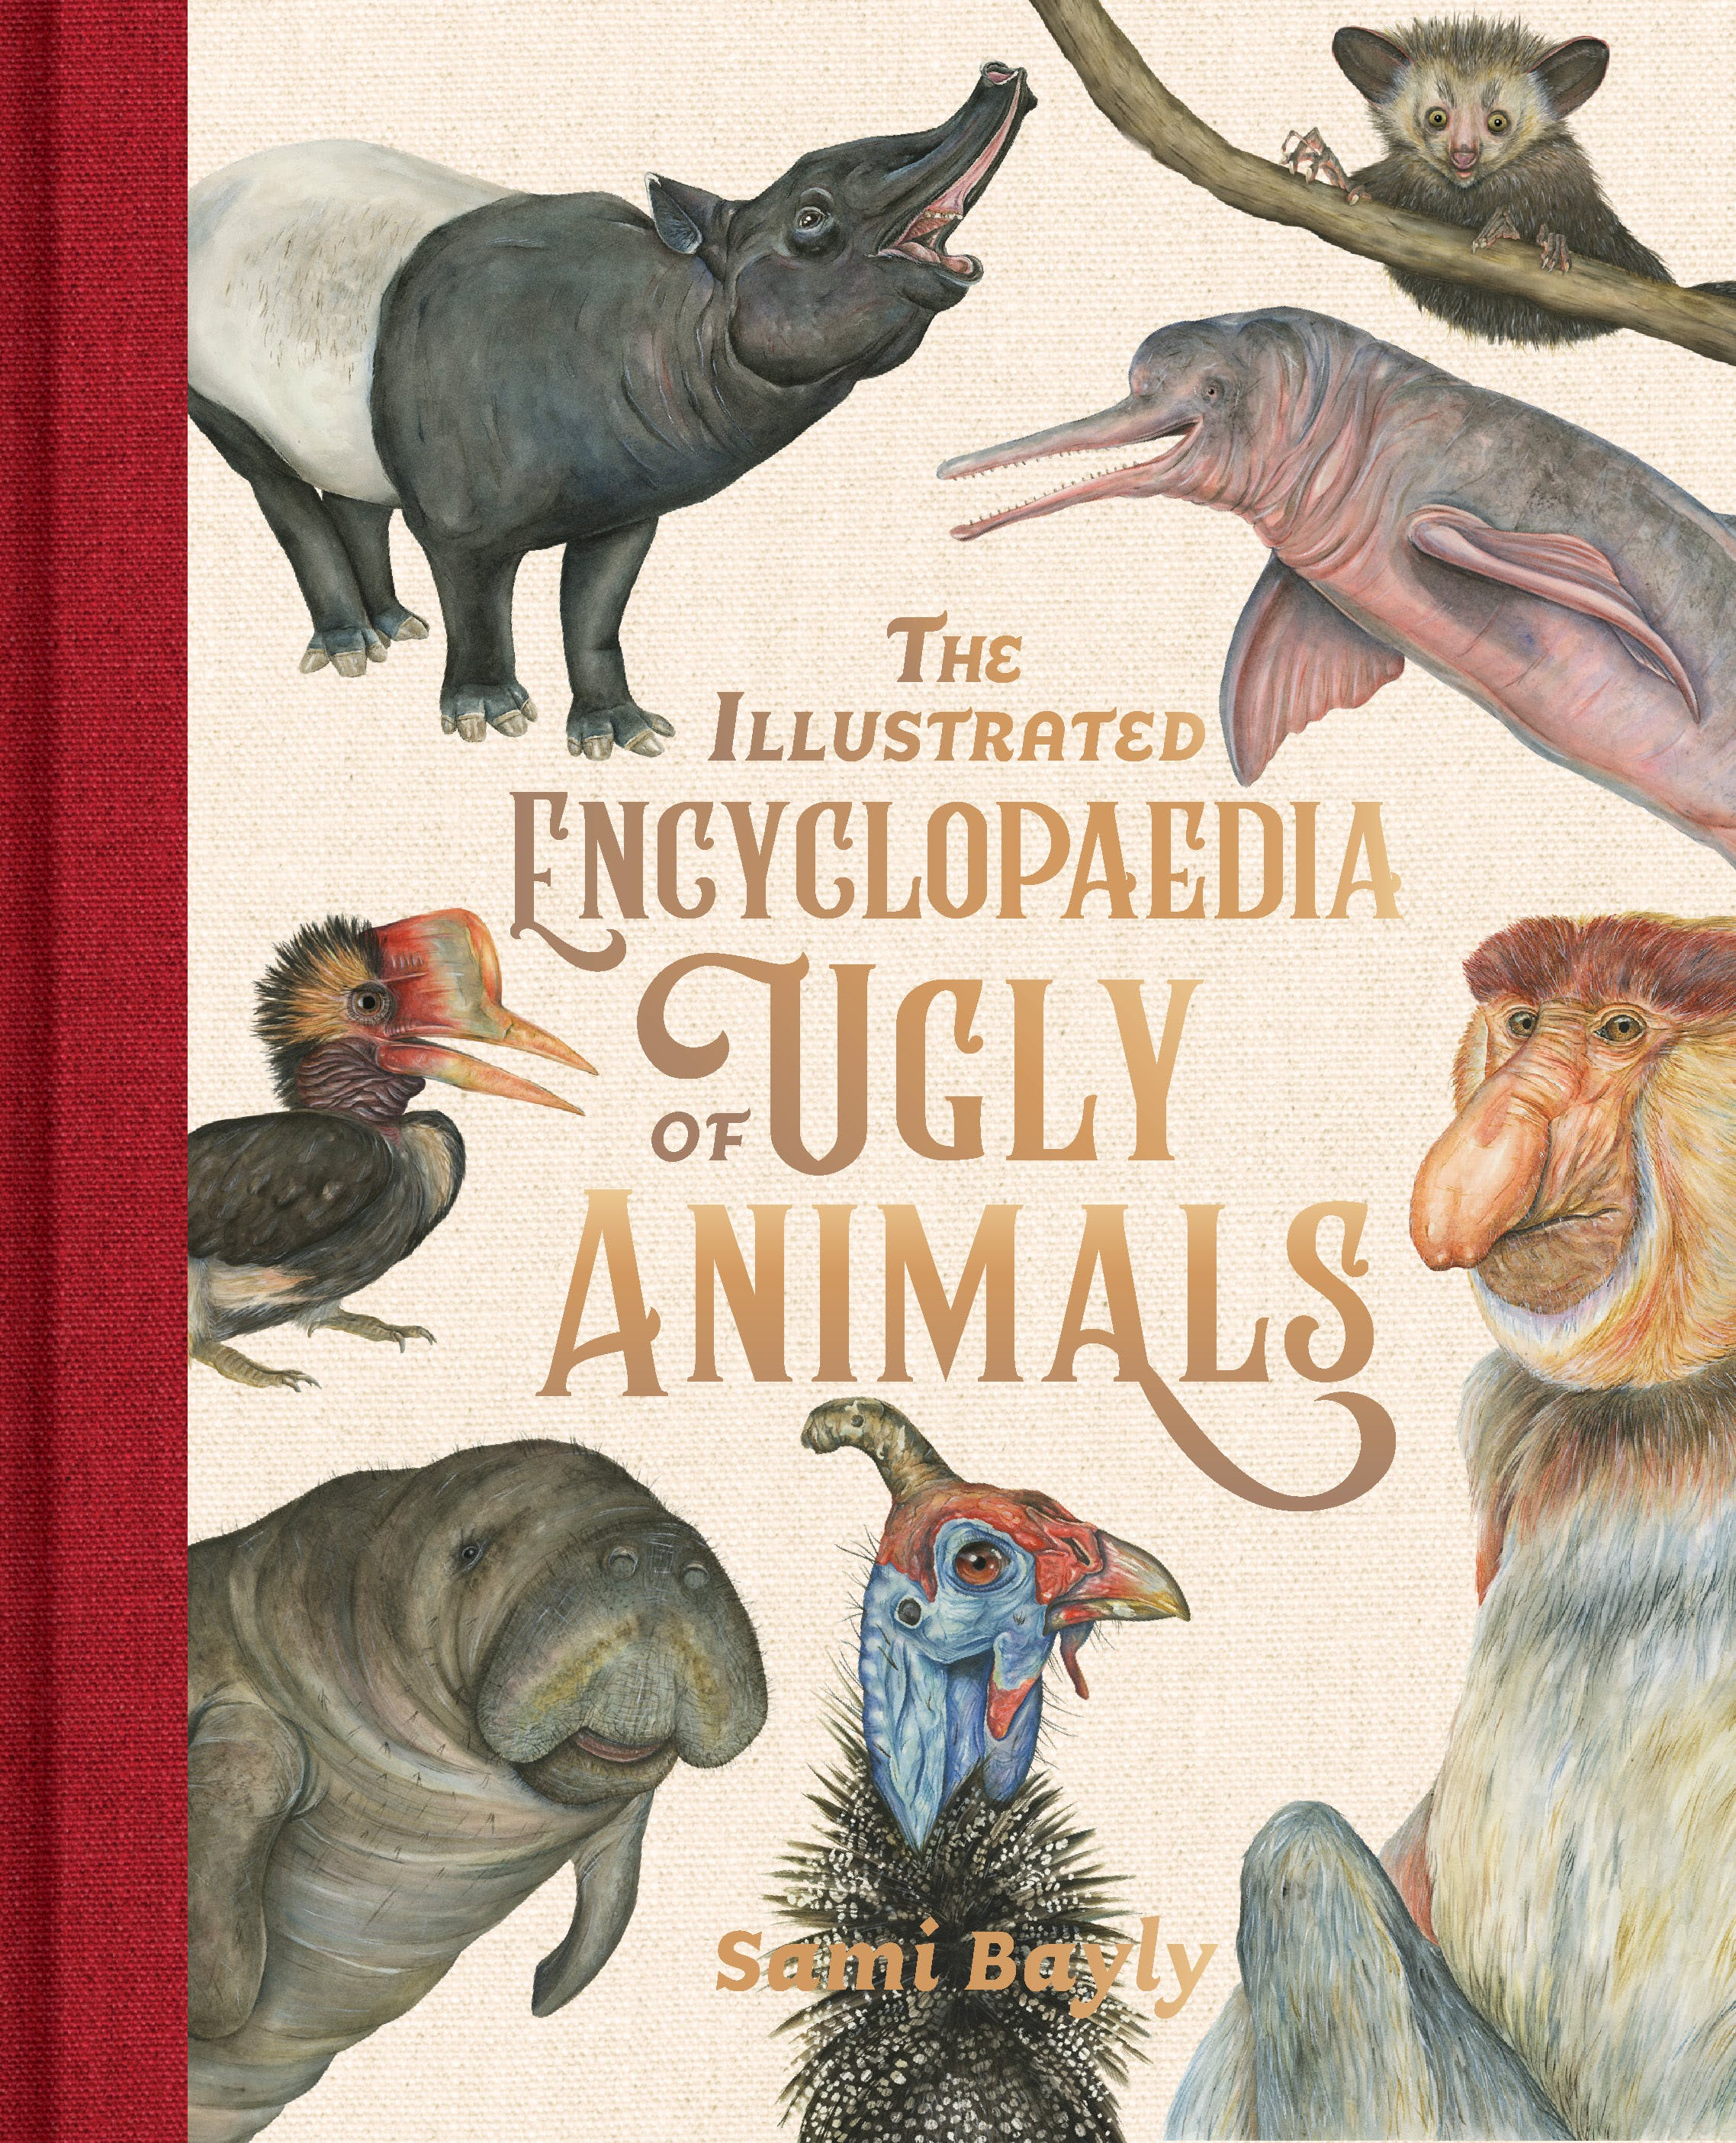 The Encyclopedia of Ugly Animals